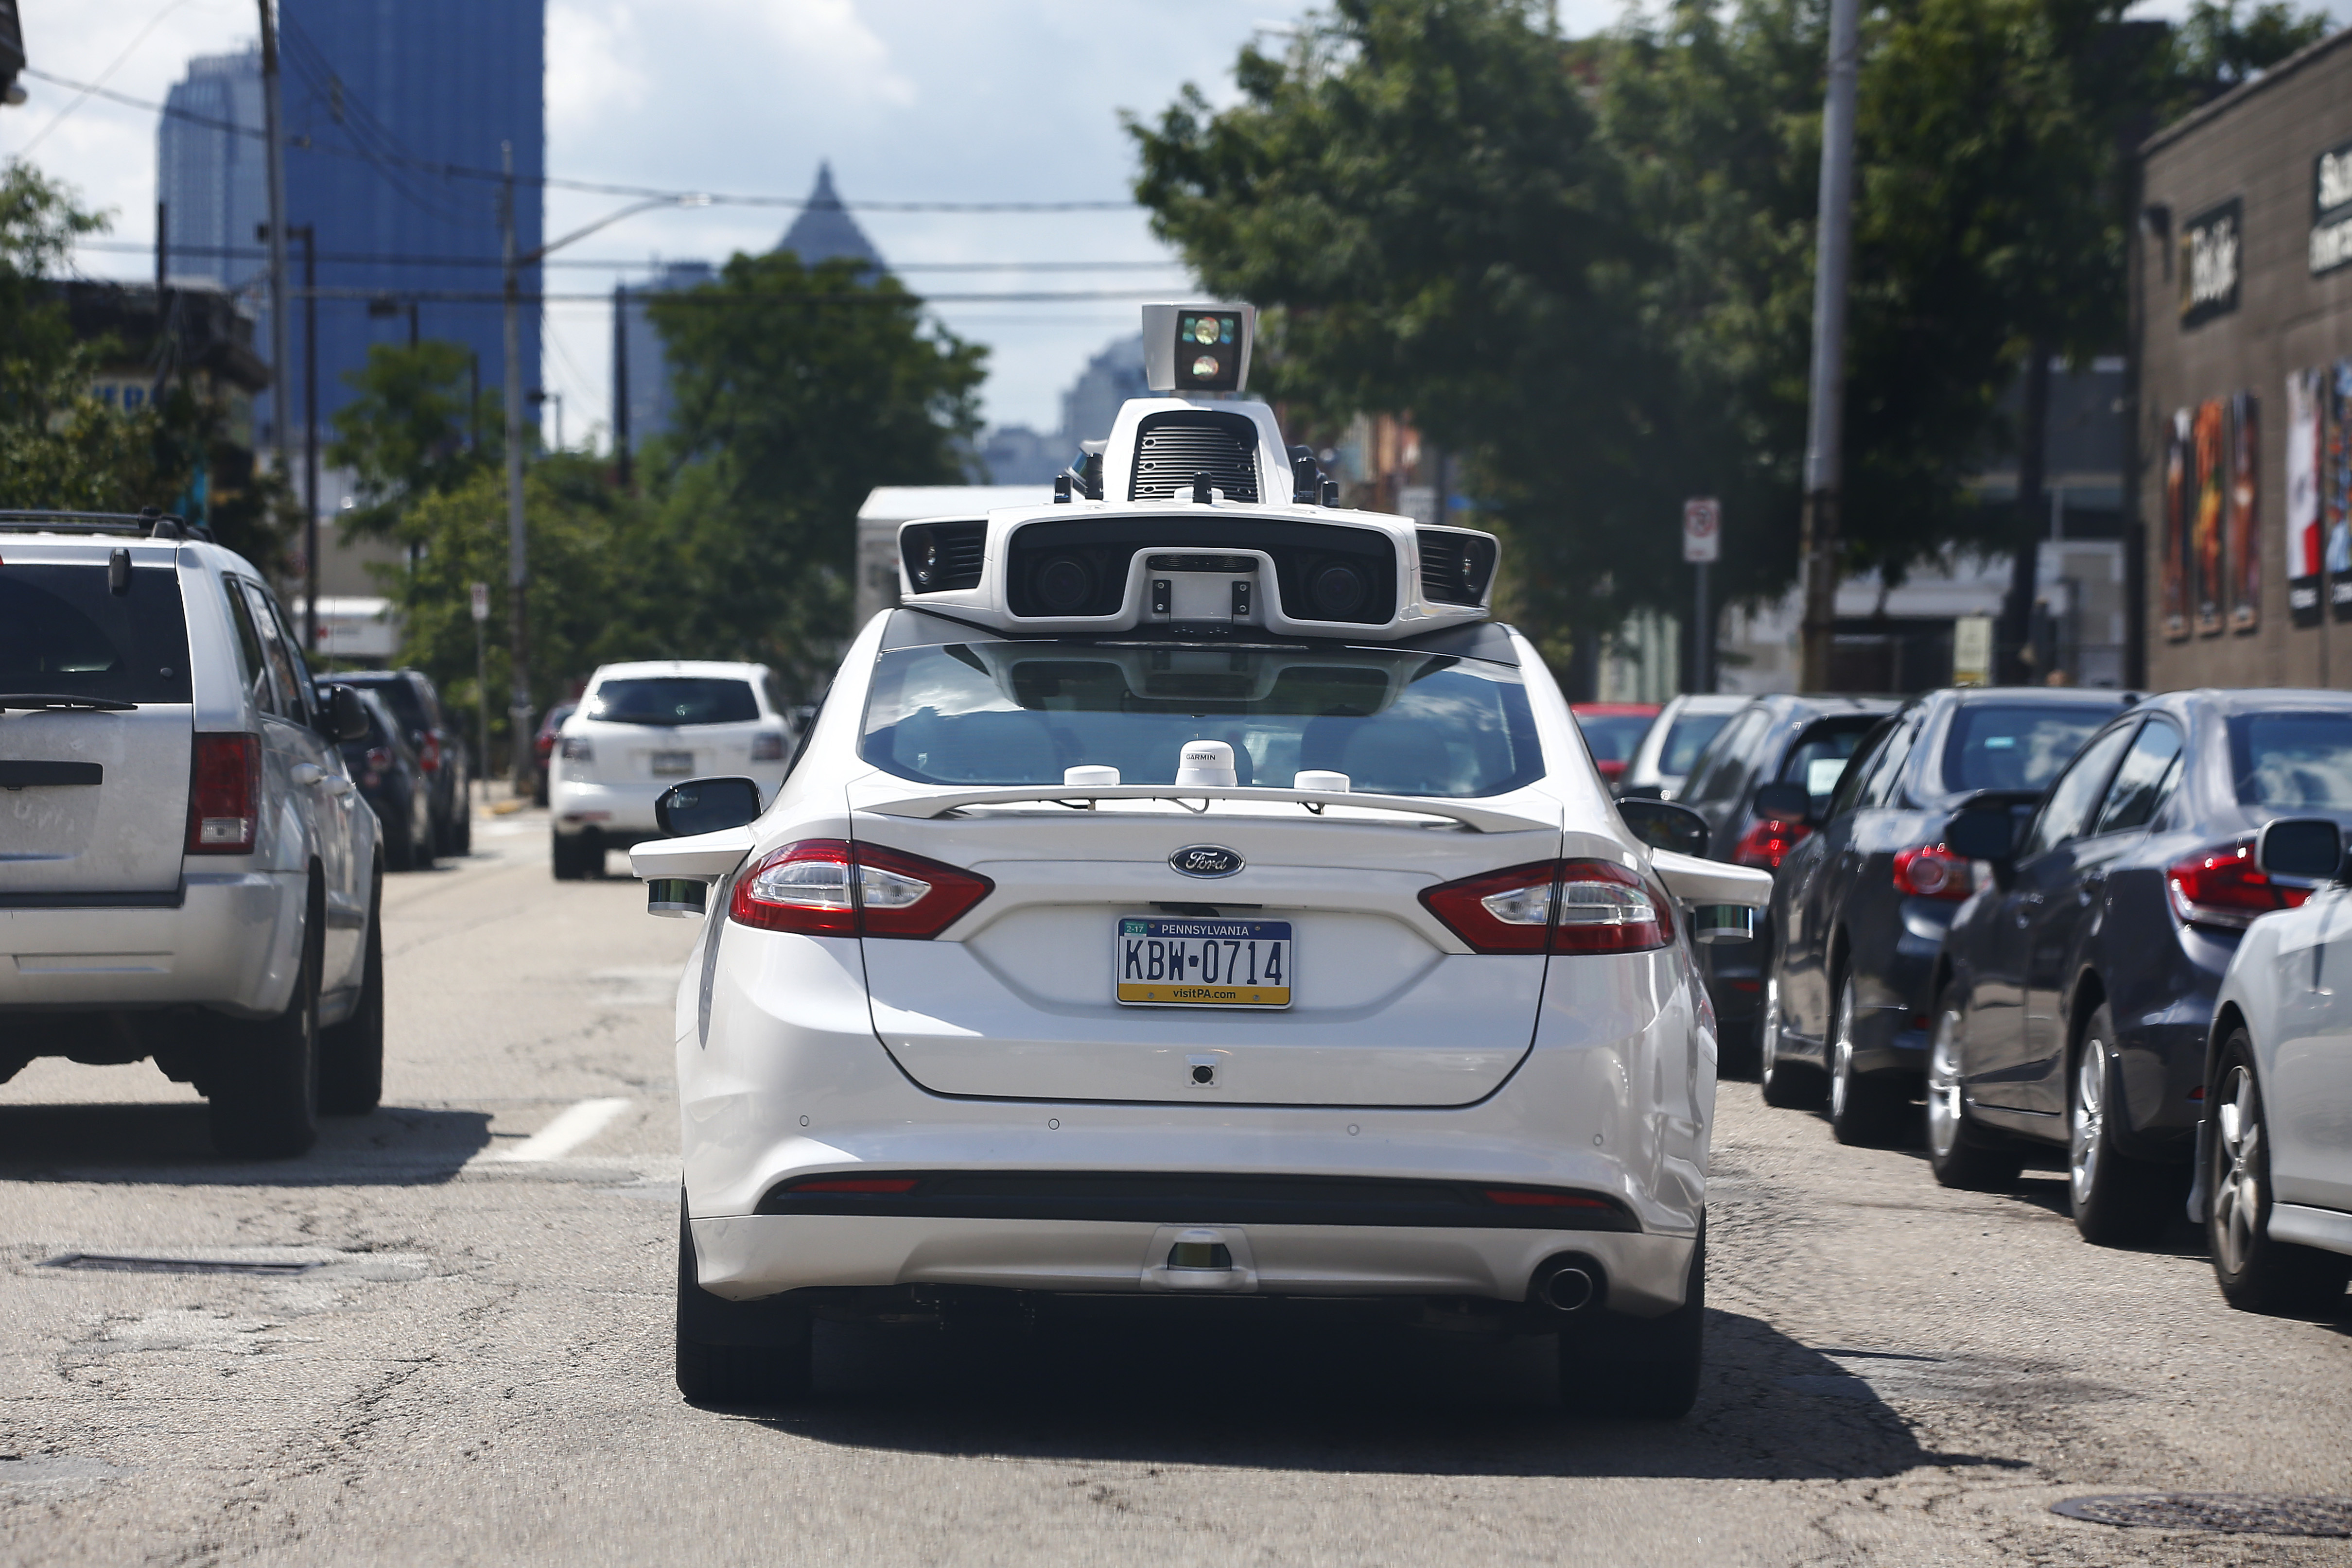 One of Uber's self-driving cars being tested in Pittsburgh, August 2016 (AP Photo/Jared Wickerham)